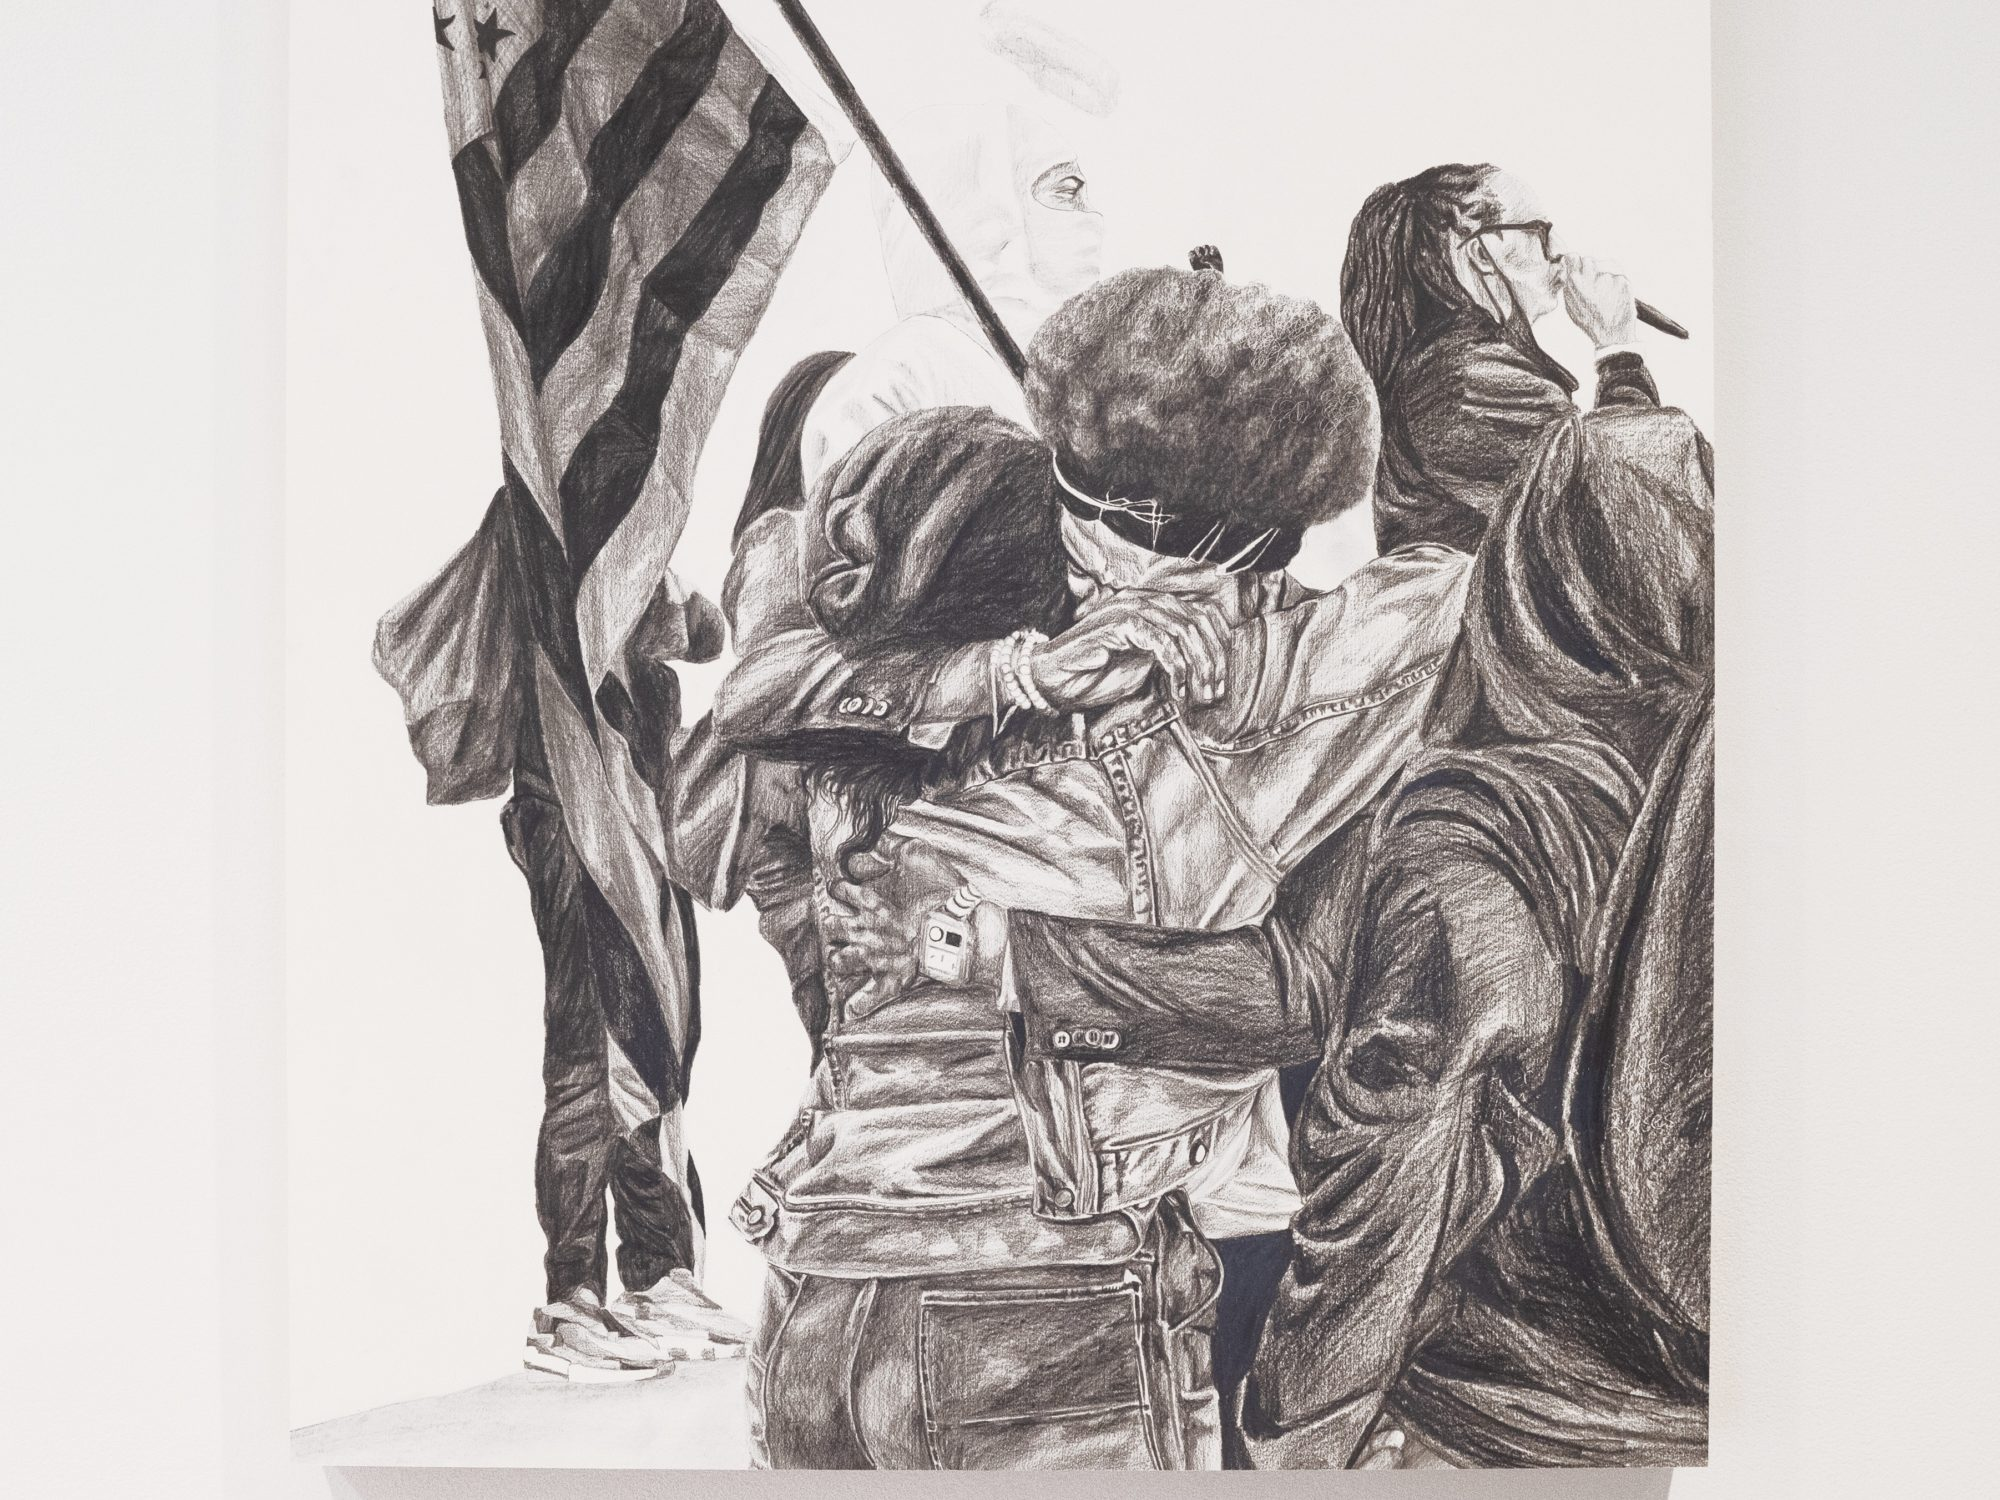 Drawing of people hugging in the foreground with a person holding an American flag in the background.